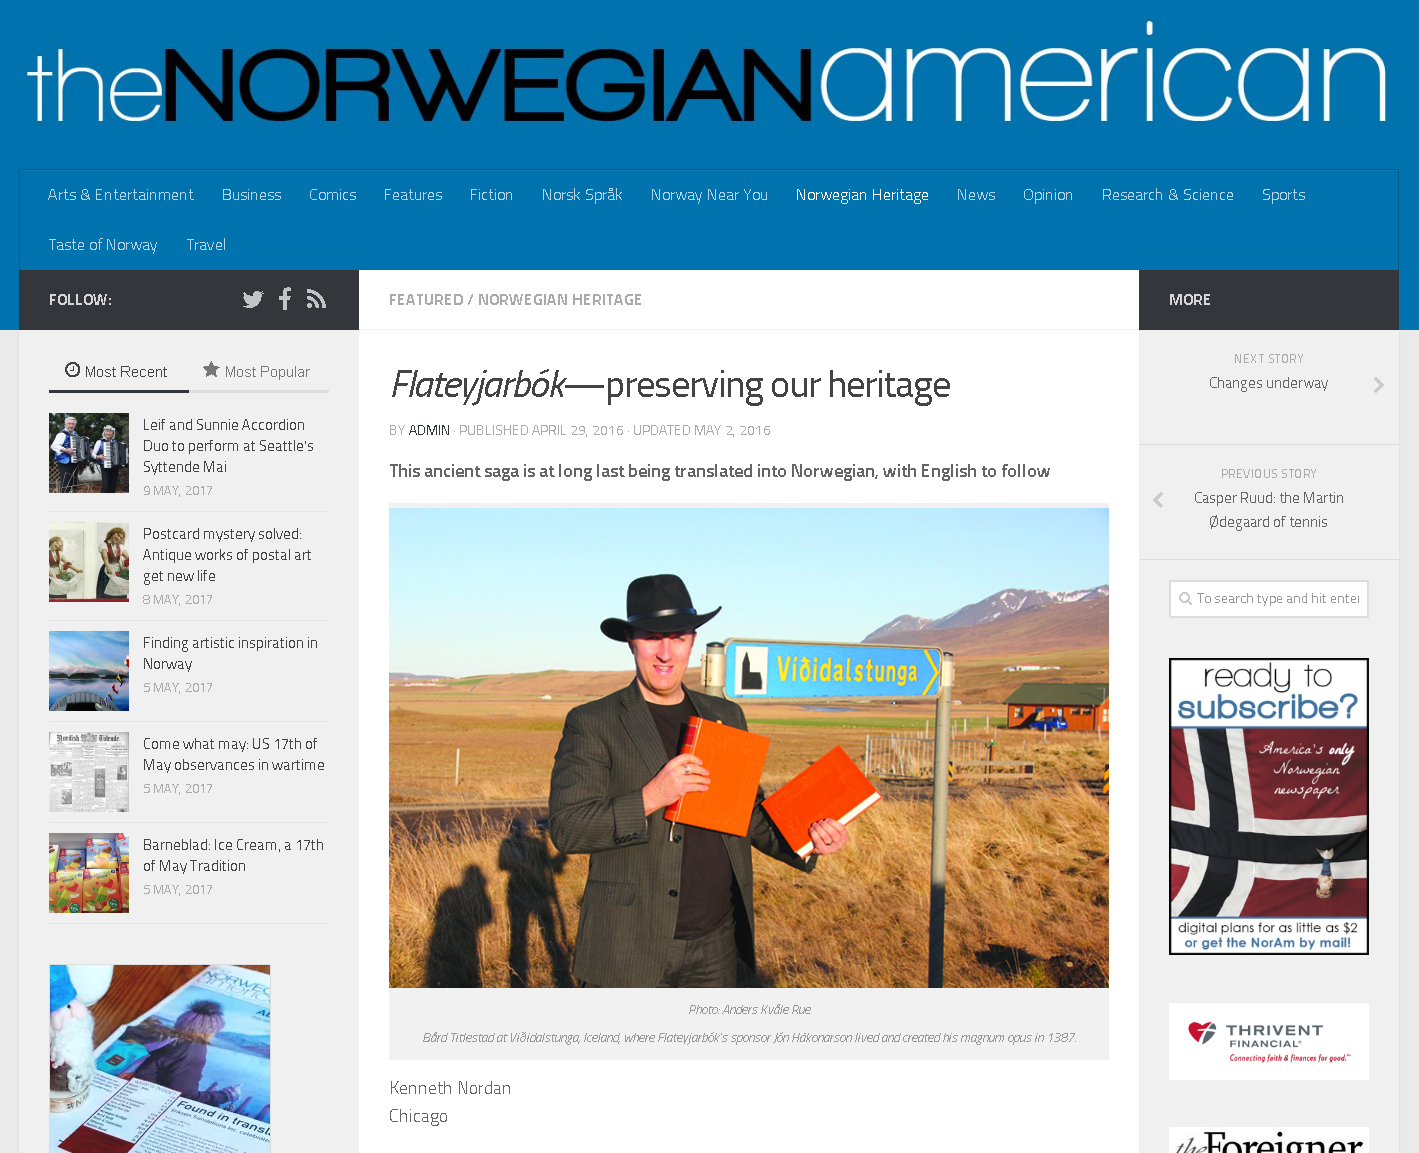 Flateyjarbok feature in the Norwegian American - https://www.norwegianamerican.com/featured/flateyjarbok-preserving-our-heritage/